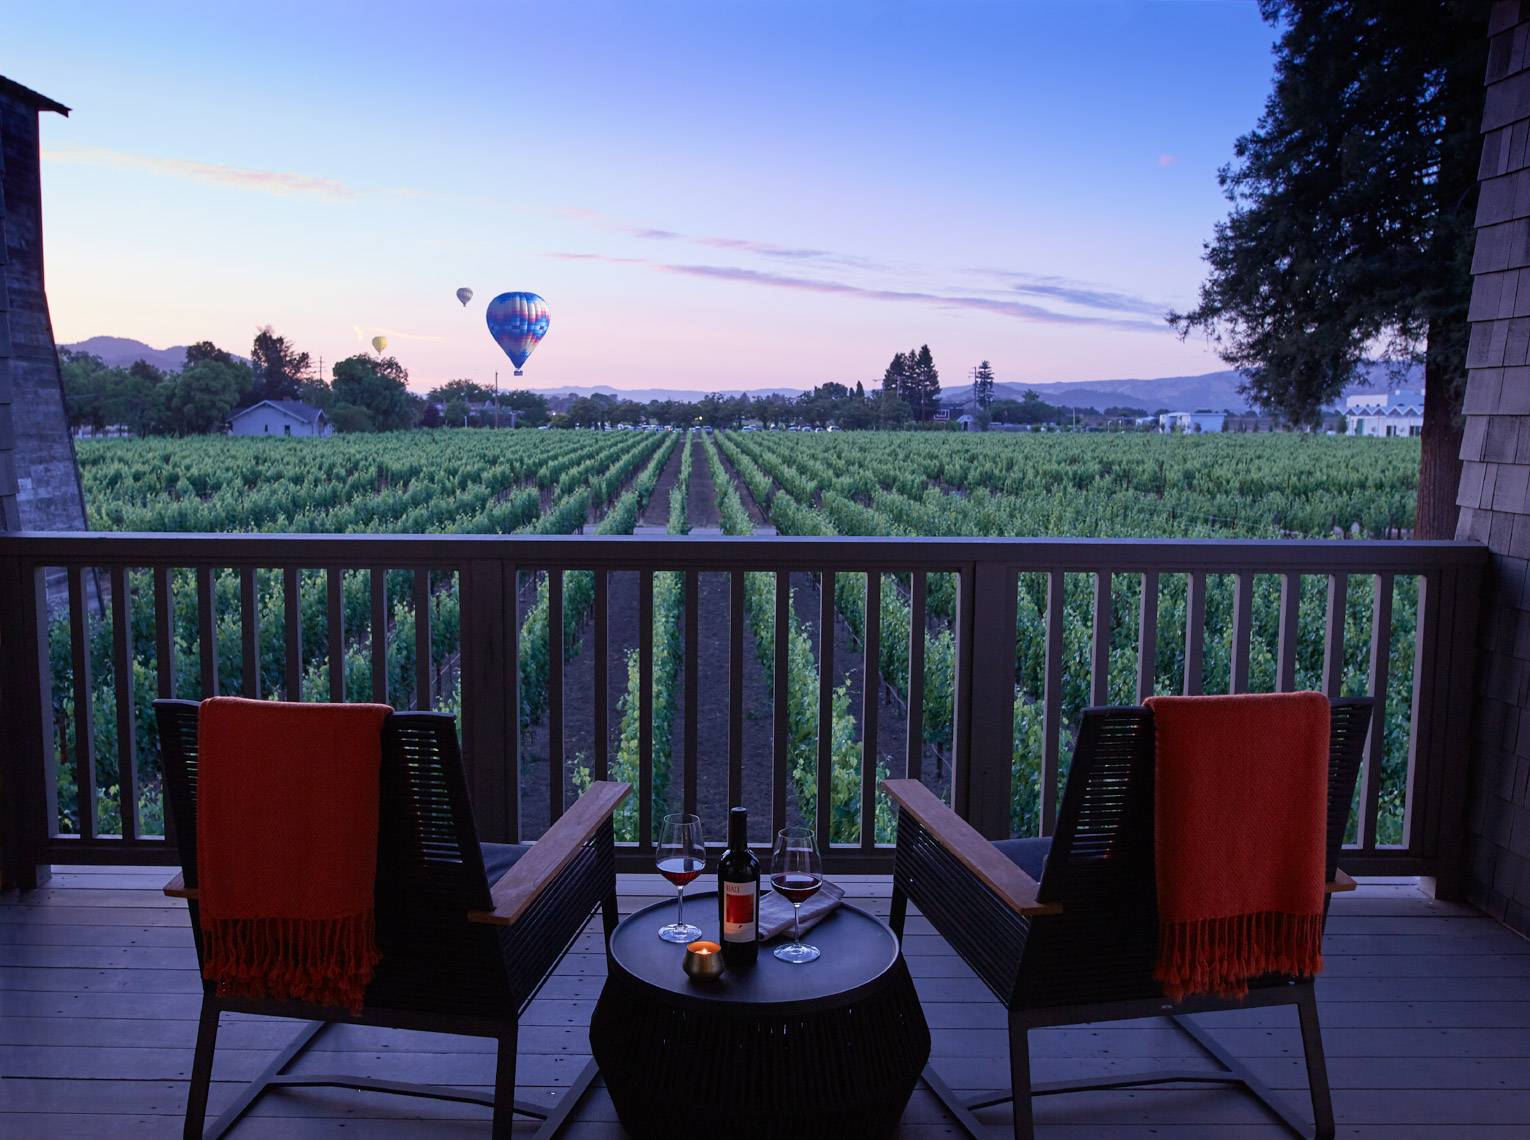 Morning hot air balloons lifting off over the vinyards shot for Senza Hotel and Spa in Napa California San Francisco lifestyle photographer